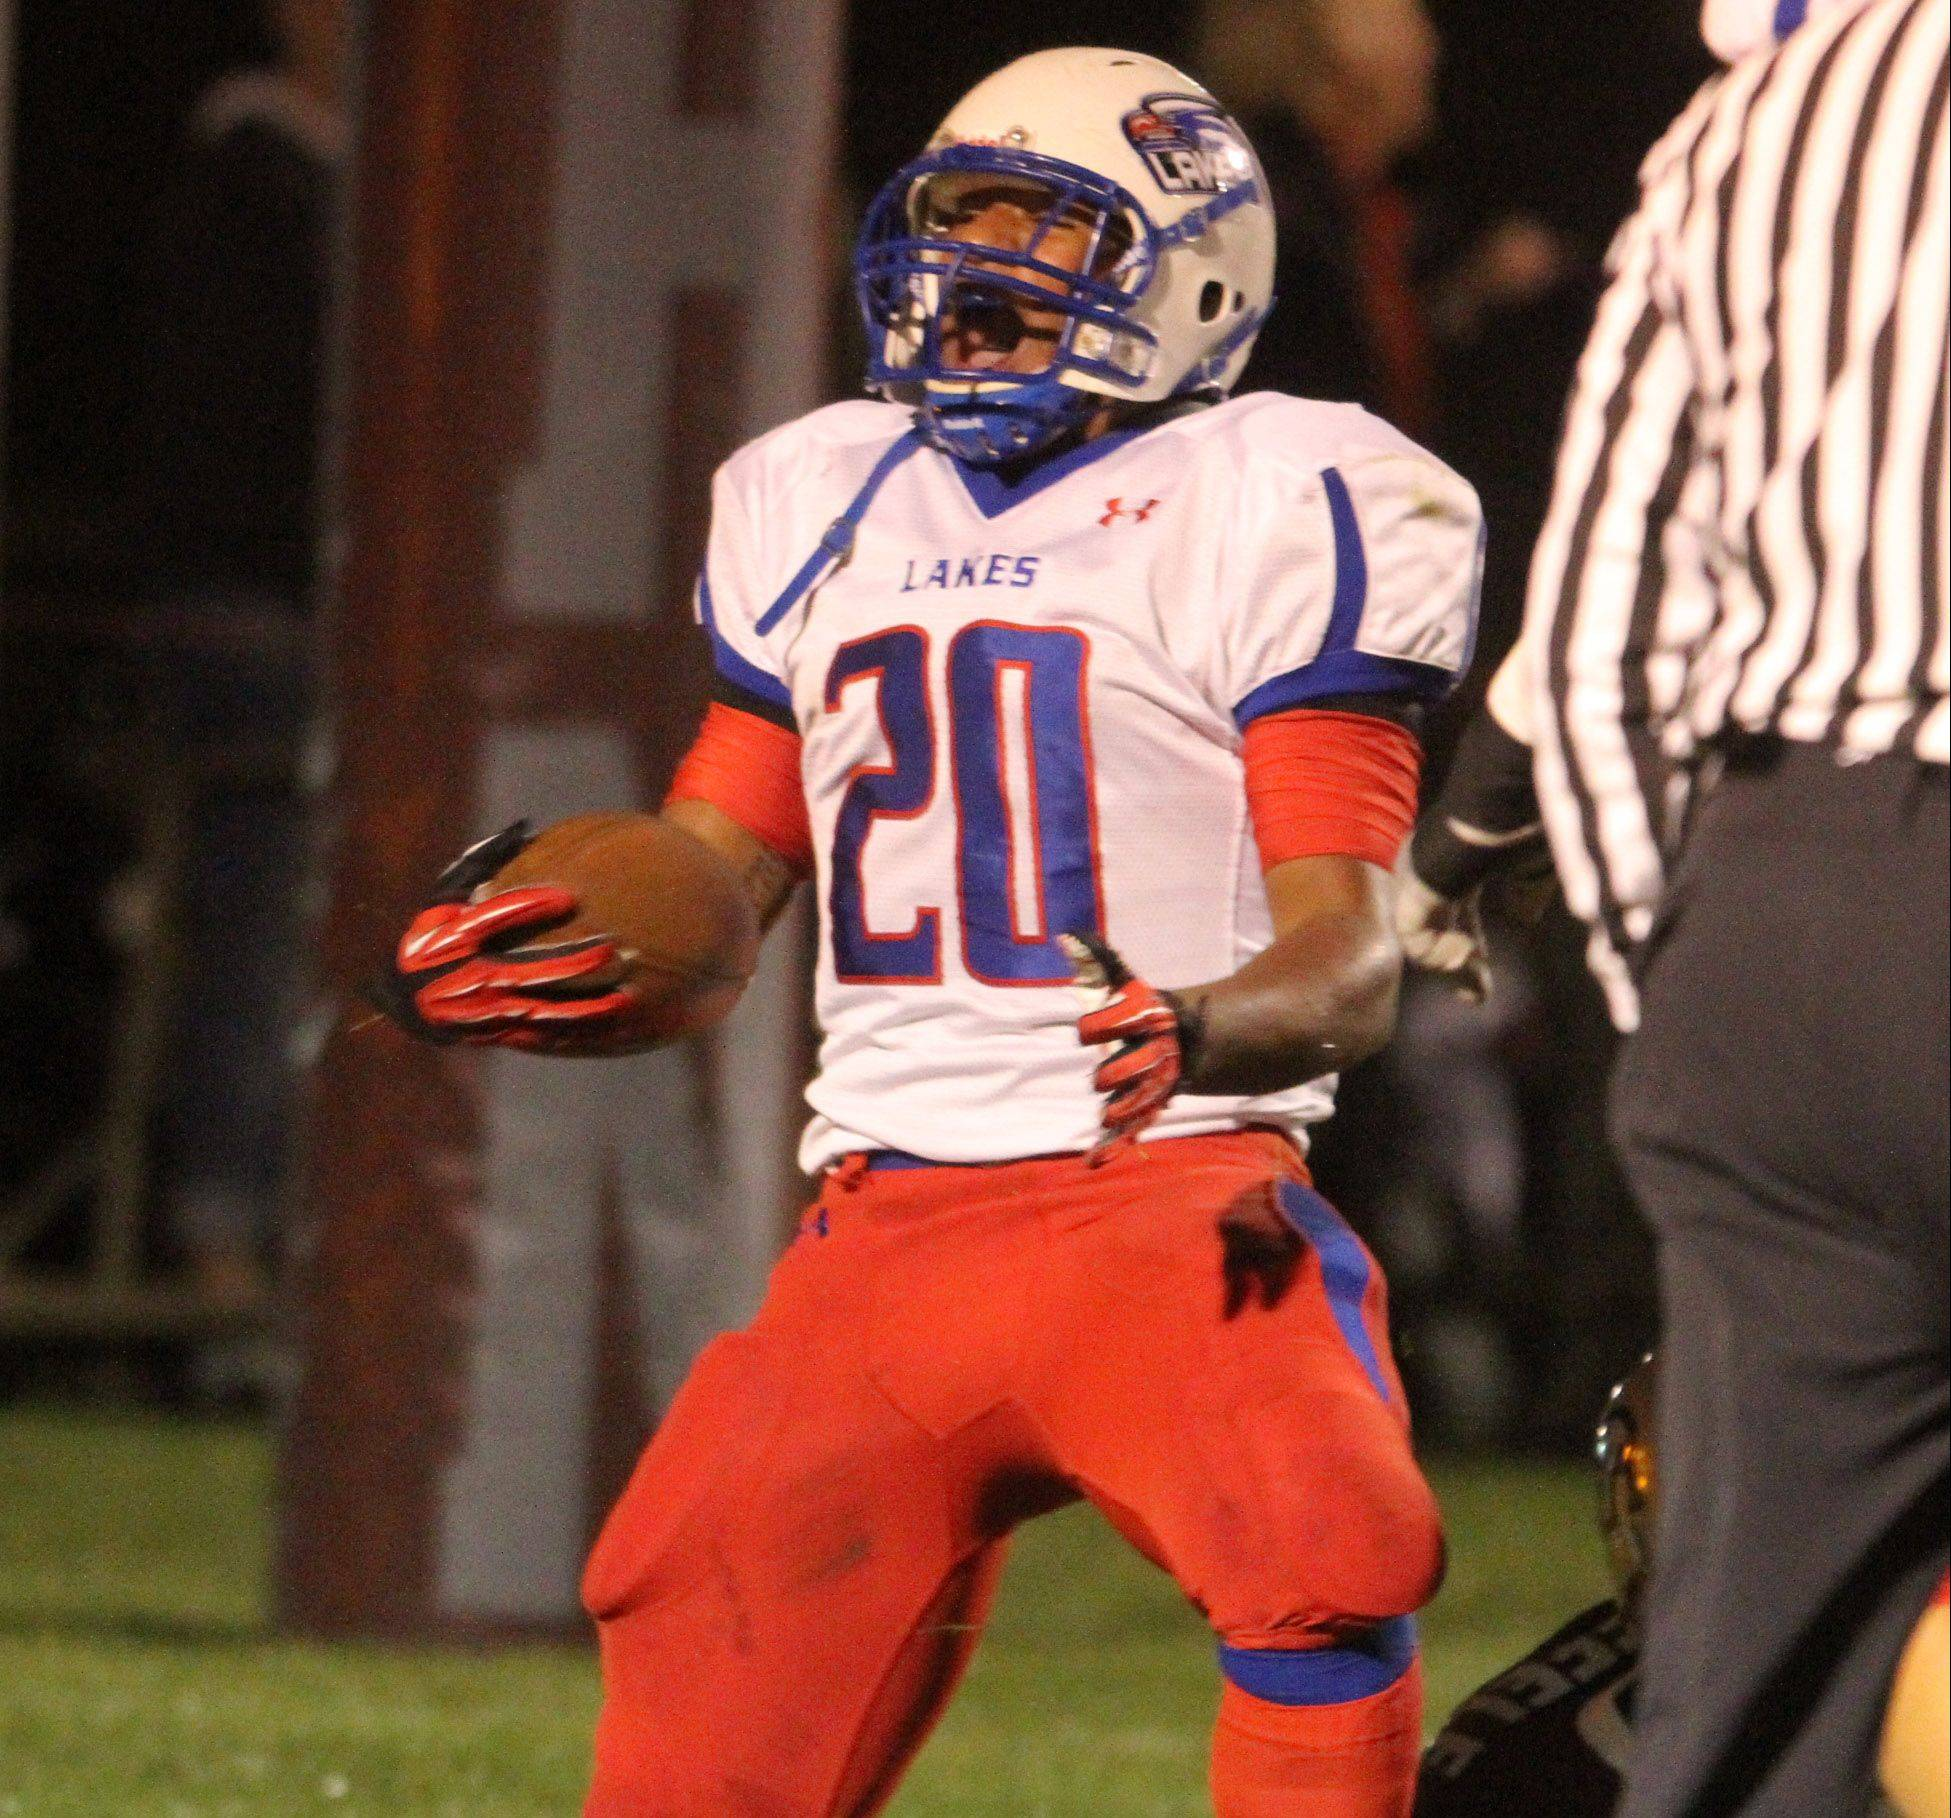 Lakes running back Direll Clark celebrates a first-quarter touchdown at Antioch on Friday.